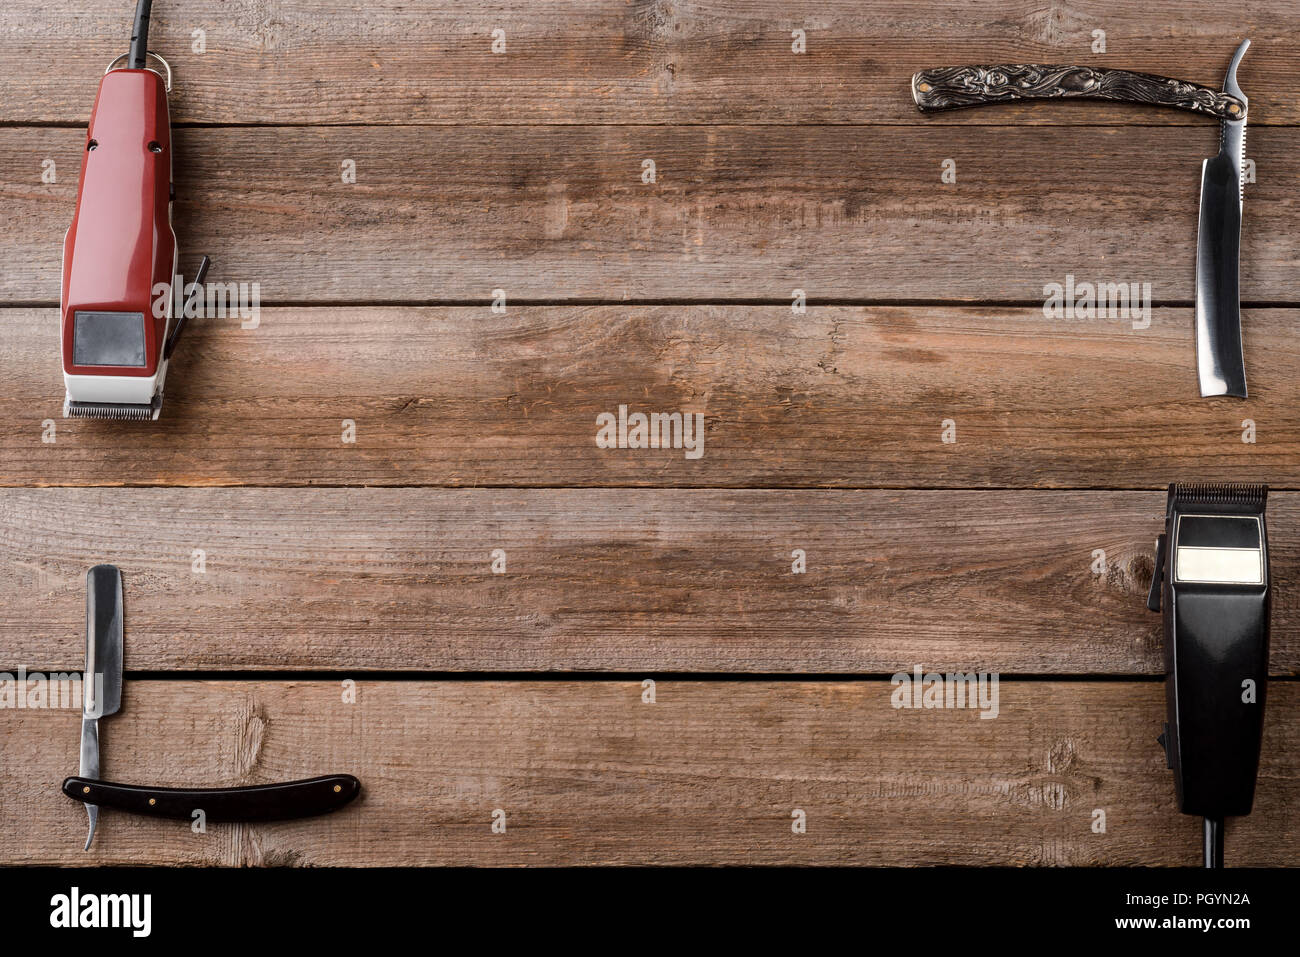 Electric clippers on wooden background - Stock Image